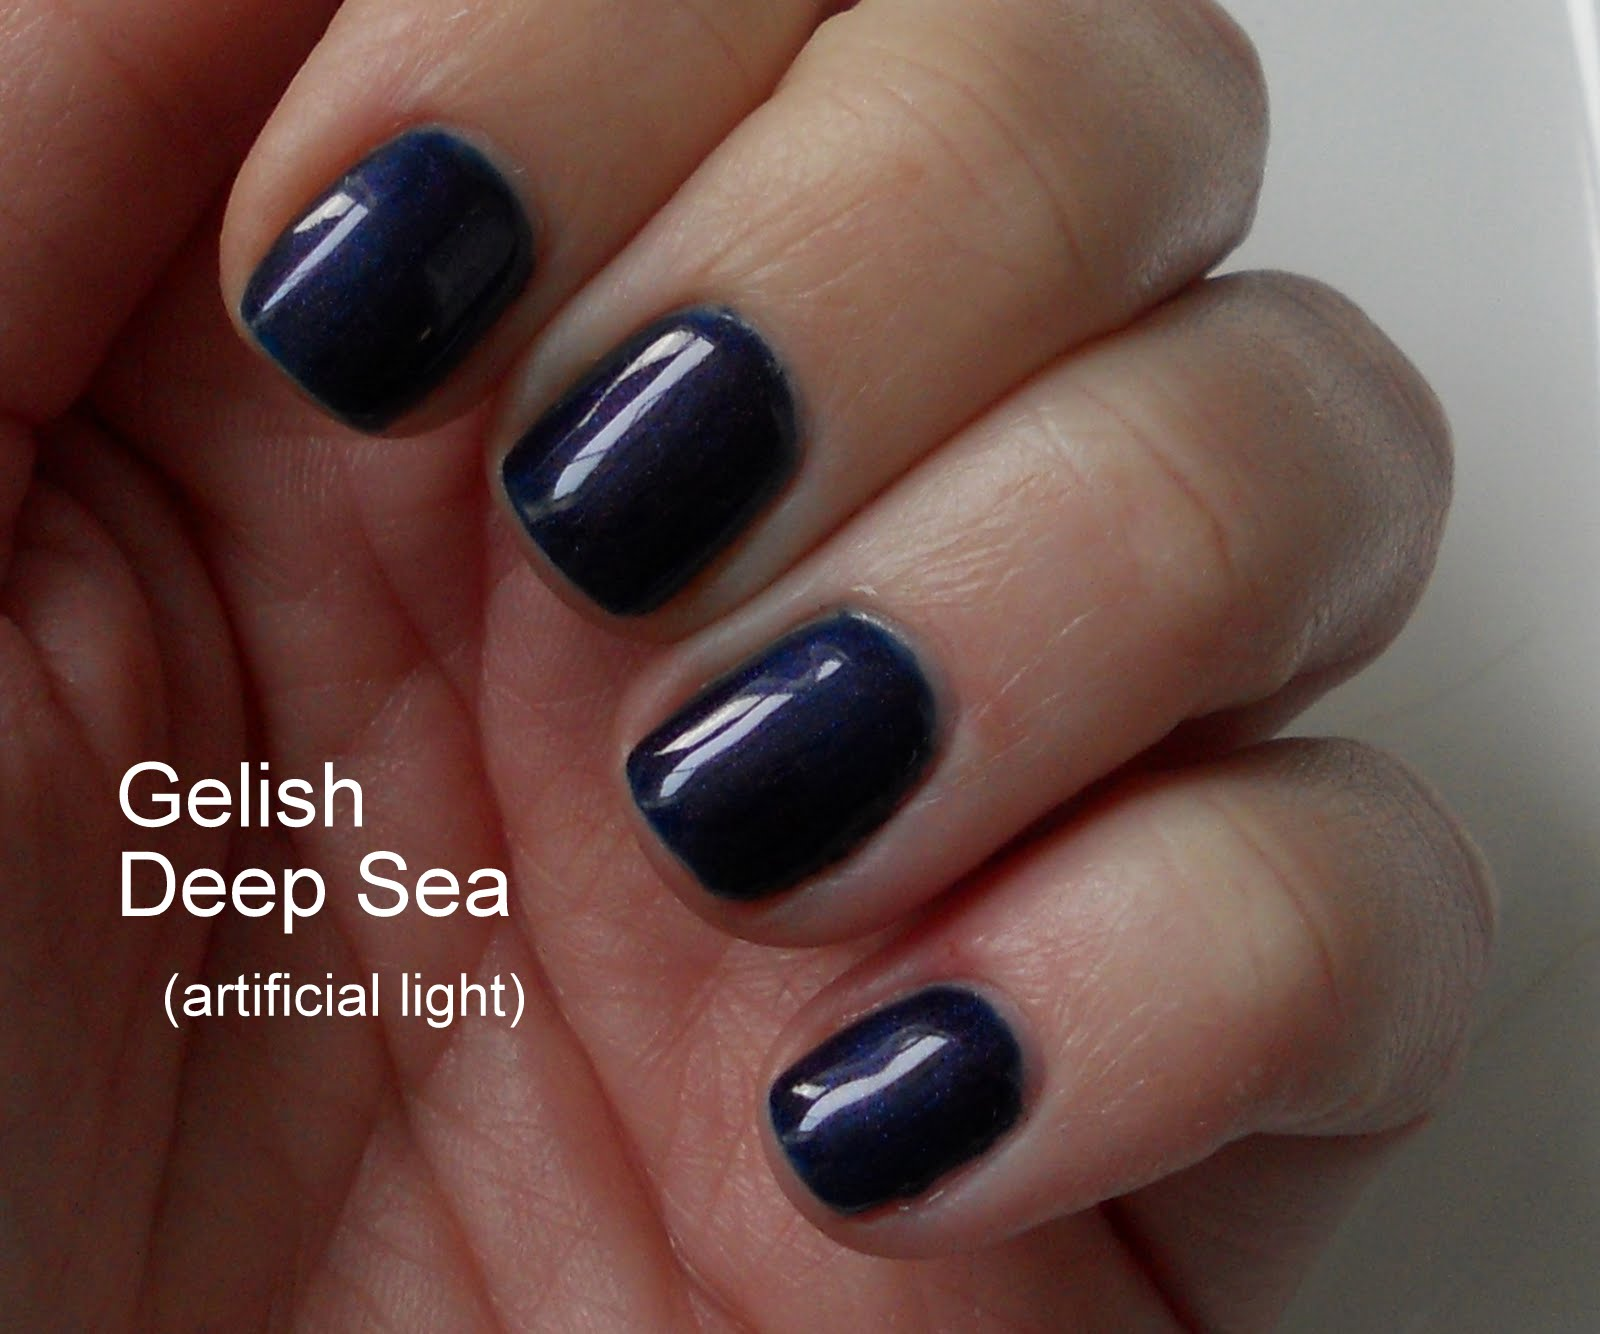 SMITTEN...in cleveland: Gelish - Deep Sea & GelColor By OPI